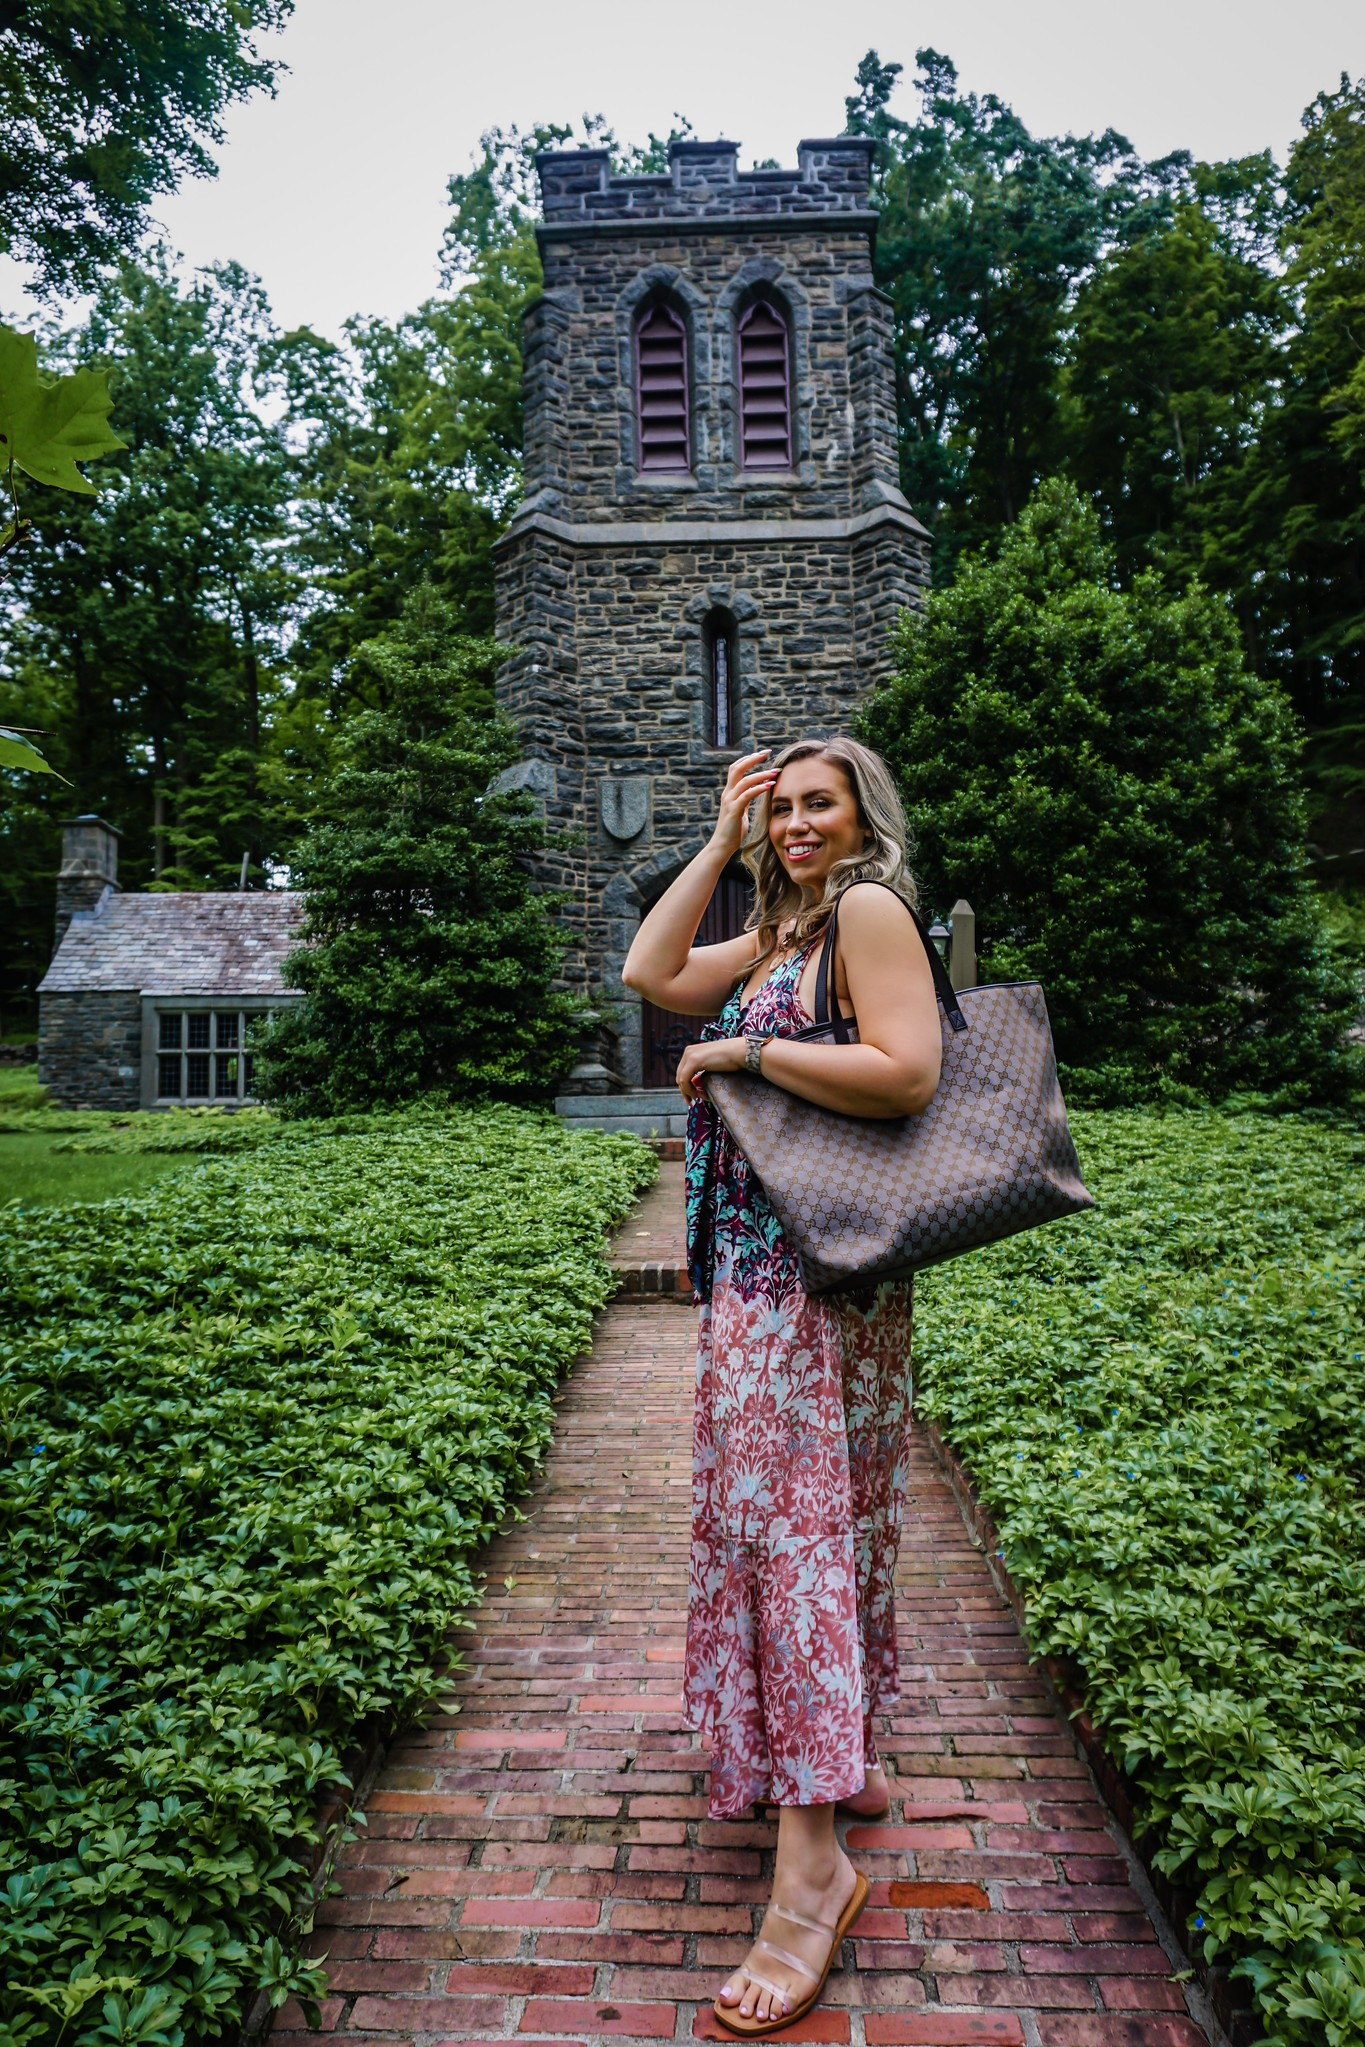 3 Ways to Wear Pre-Loved Designer Bag   Gucci Canvas Tote Bag   LXRandCo   LXR Vintage Luxury Retailer   Vintage Designer Bag Review   Where to Buy Preloved Designer Bags   Free People Metallic Dress Outfit   Summer Outfit Ideas